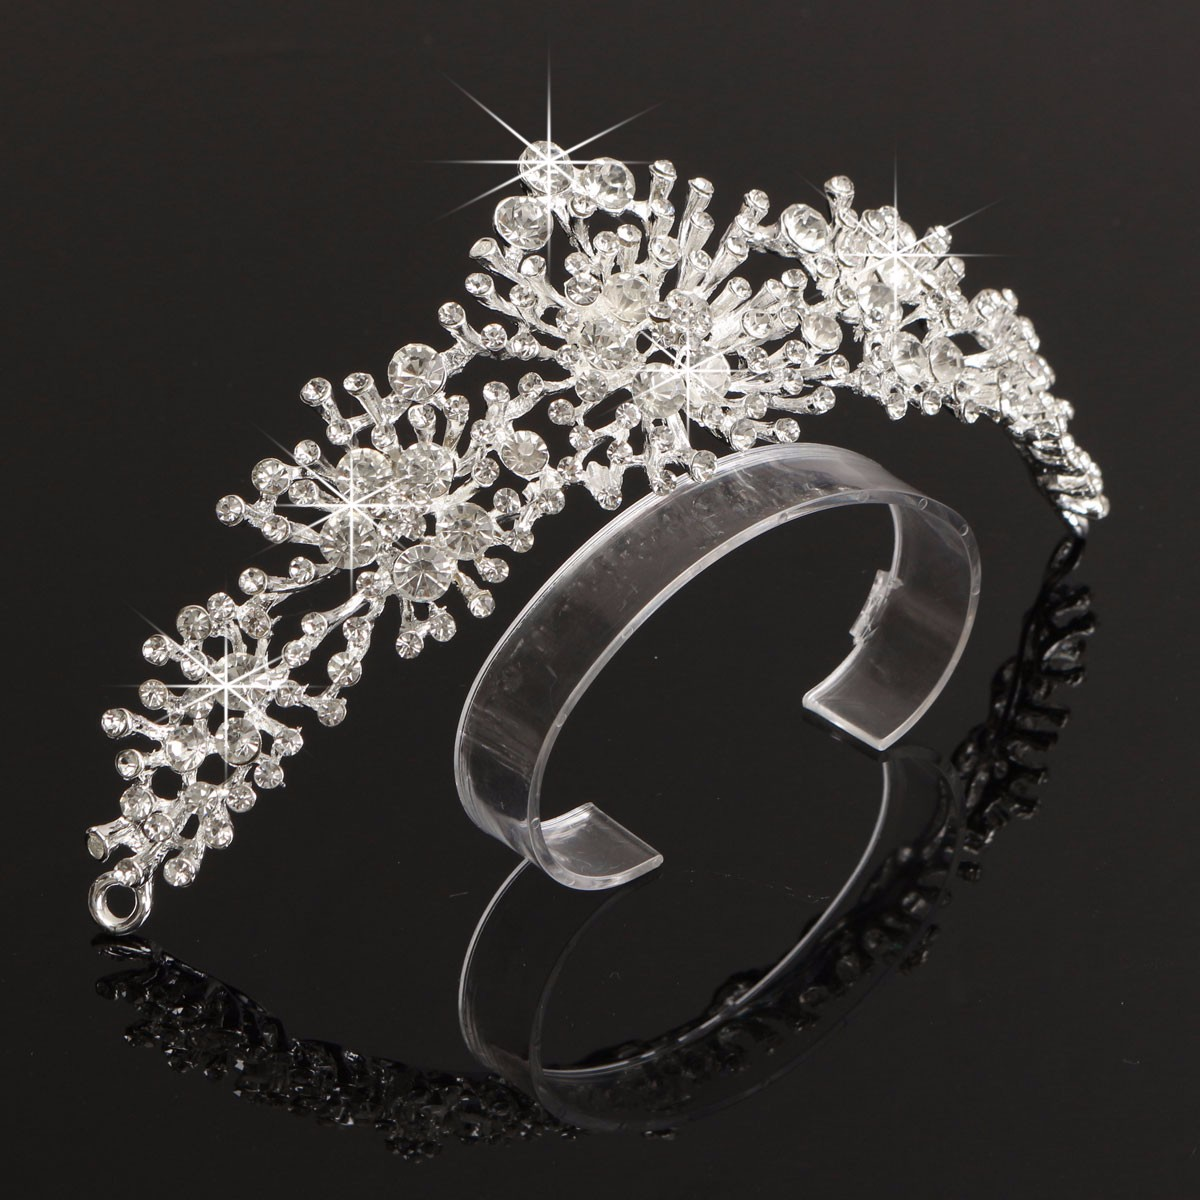 Bride Rhinestone Crystal Tiara Crown Bridal Wedding Headpeice Hair Accessories